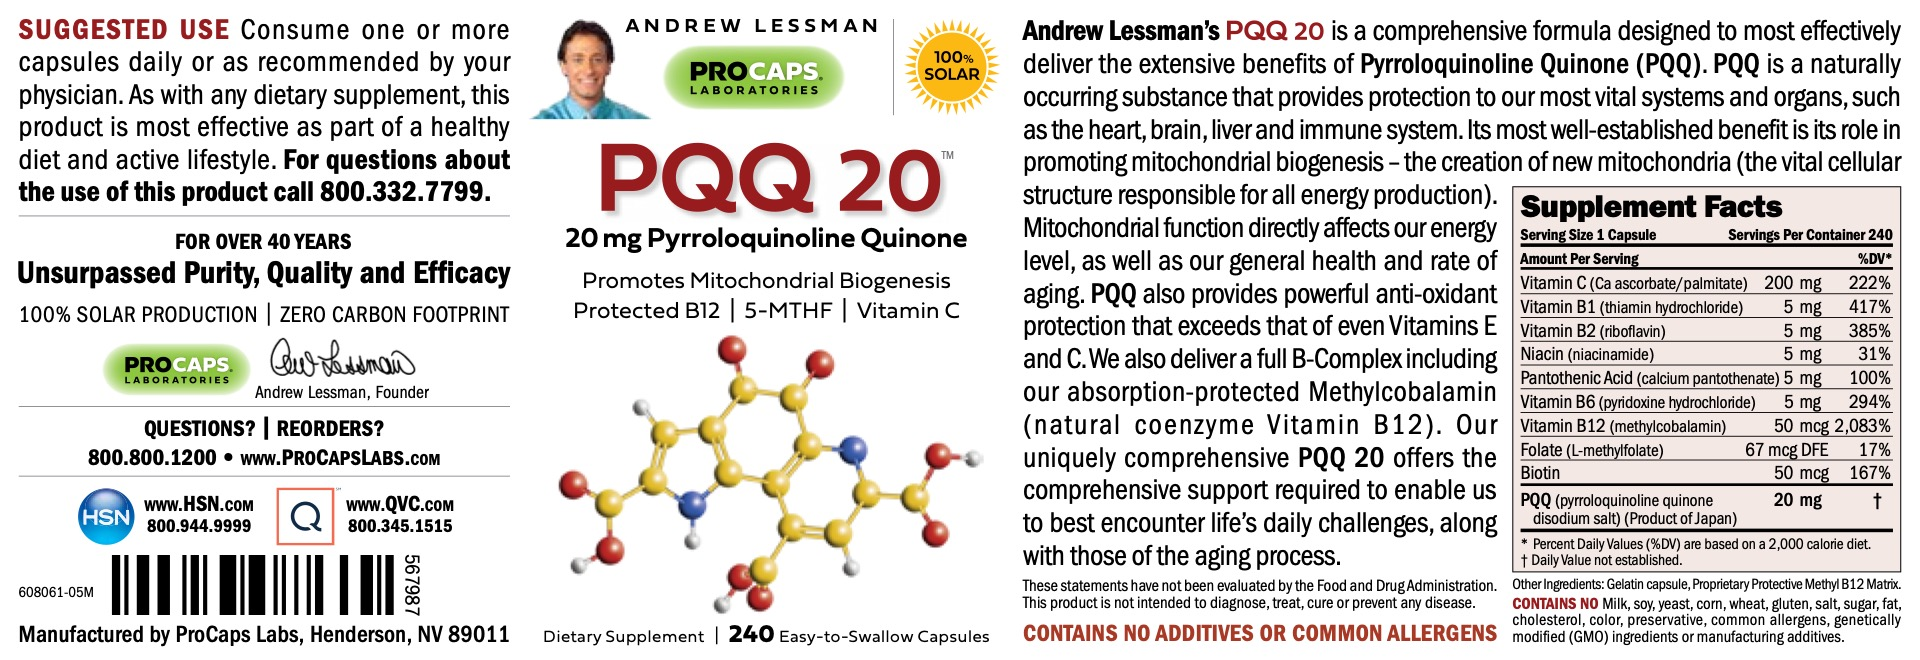 PQQ-20-Capsules-Anti-oxidants